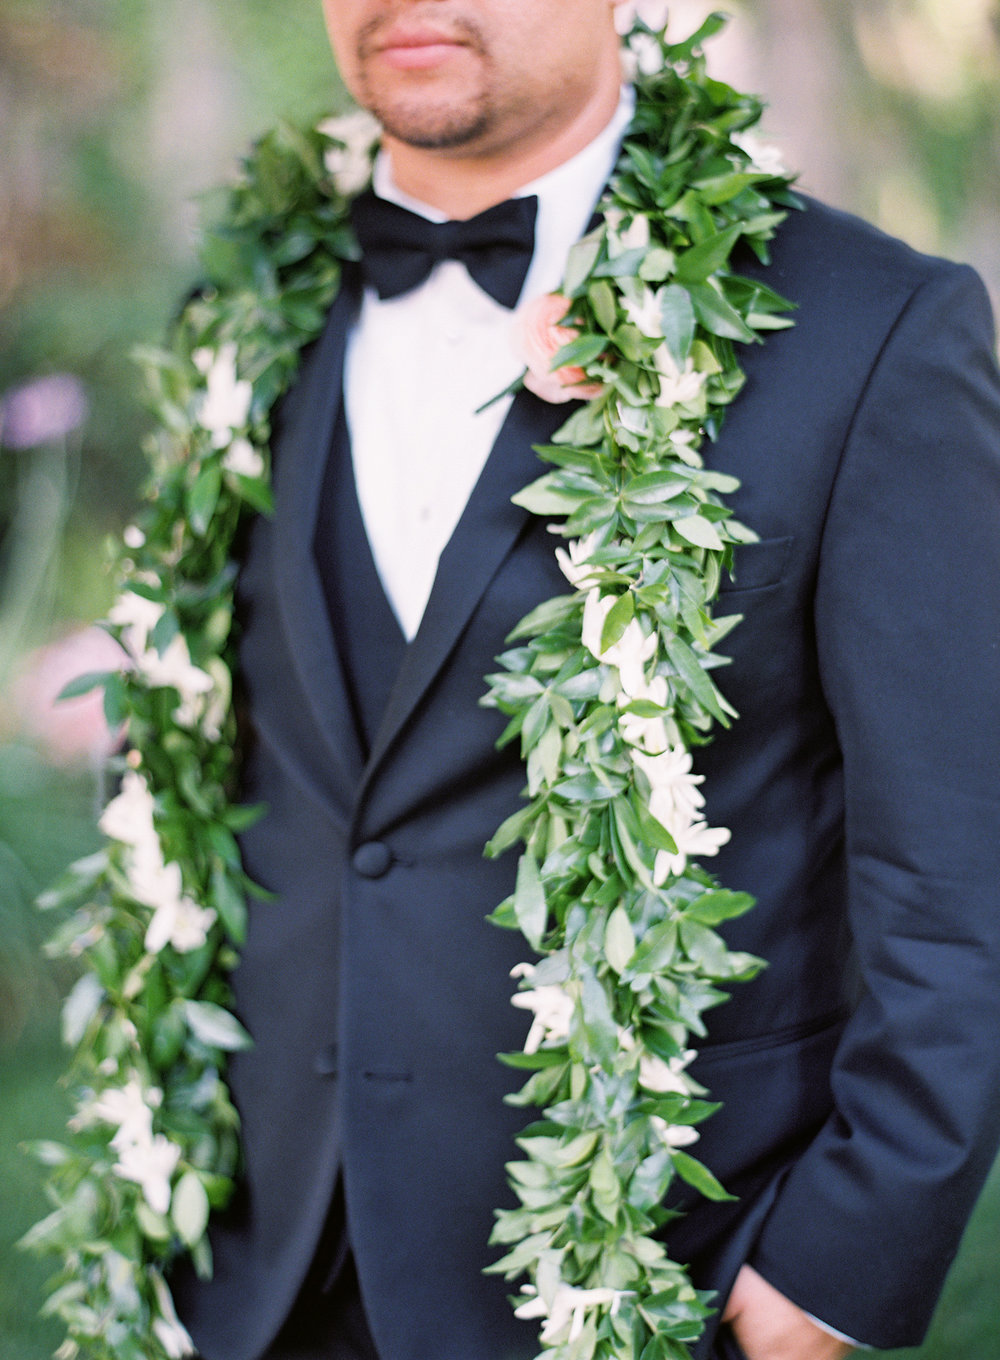 hawaiian-inspired-wedding-in-danville-california-002-4.jpg